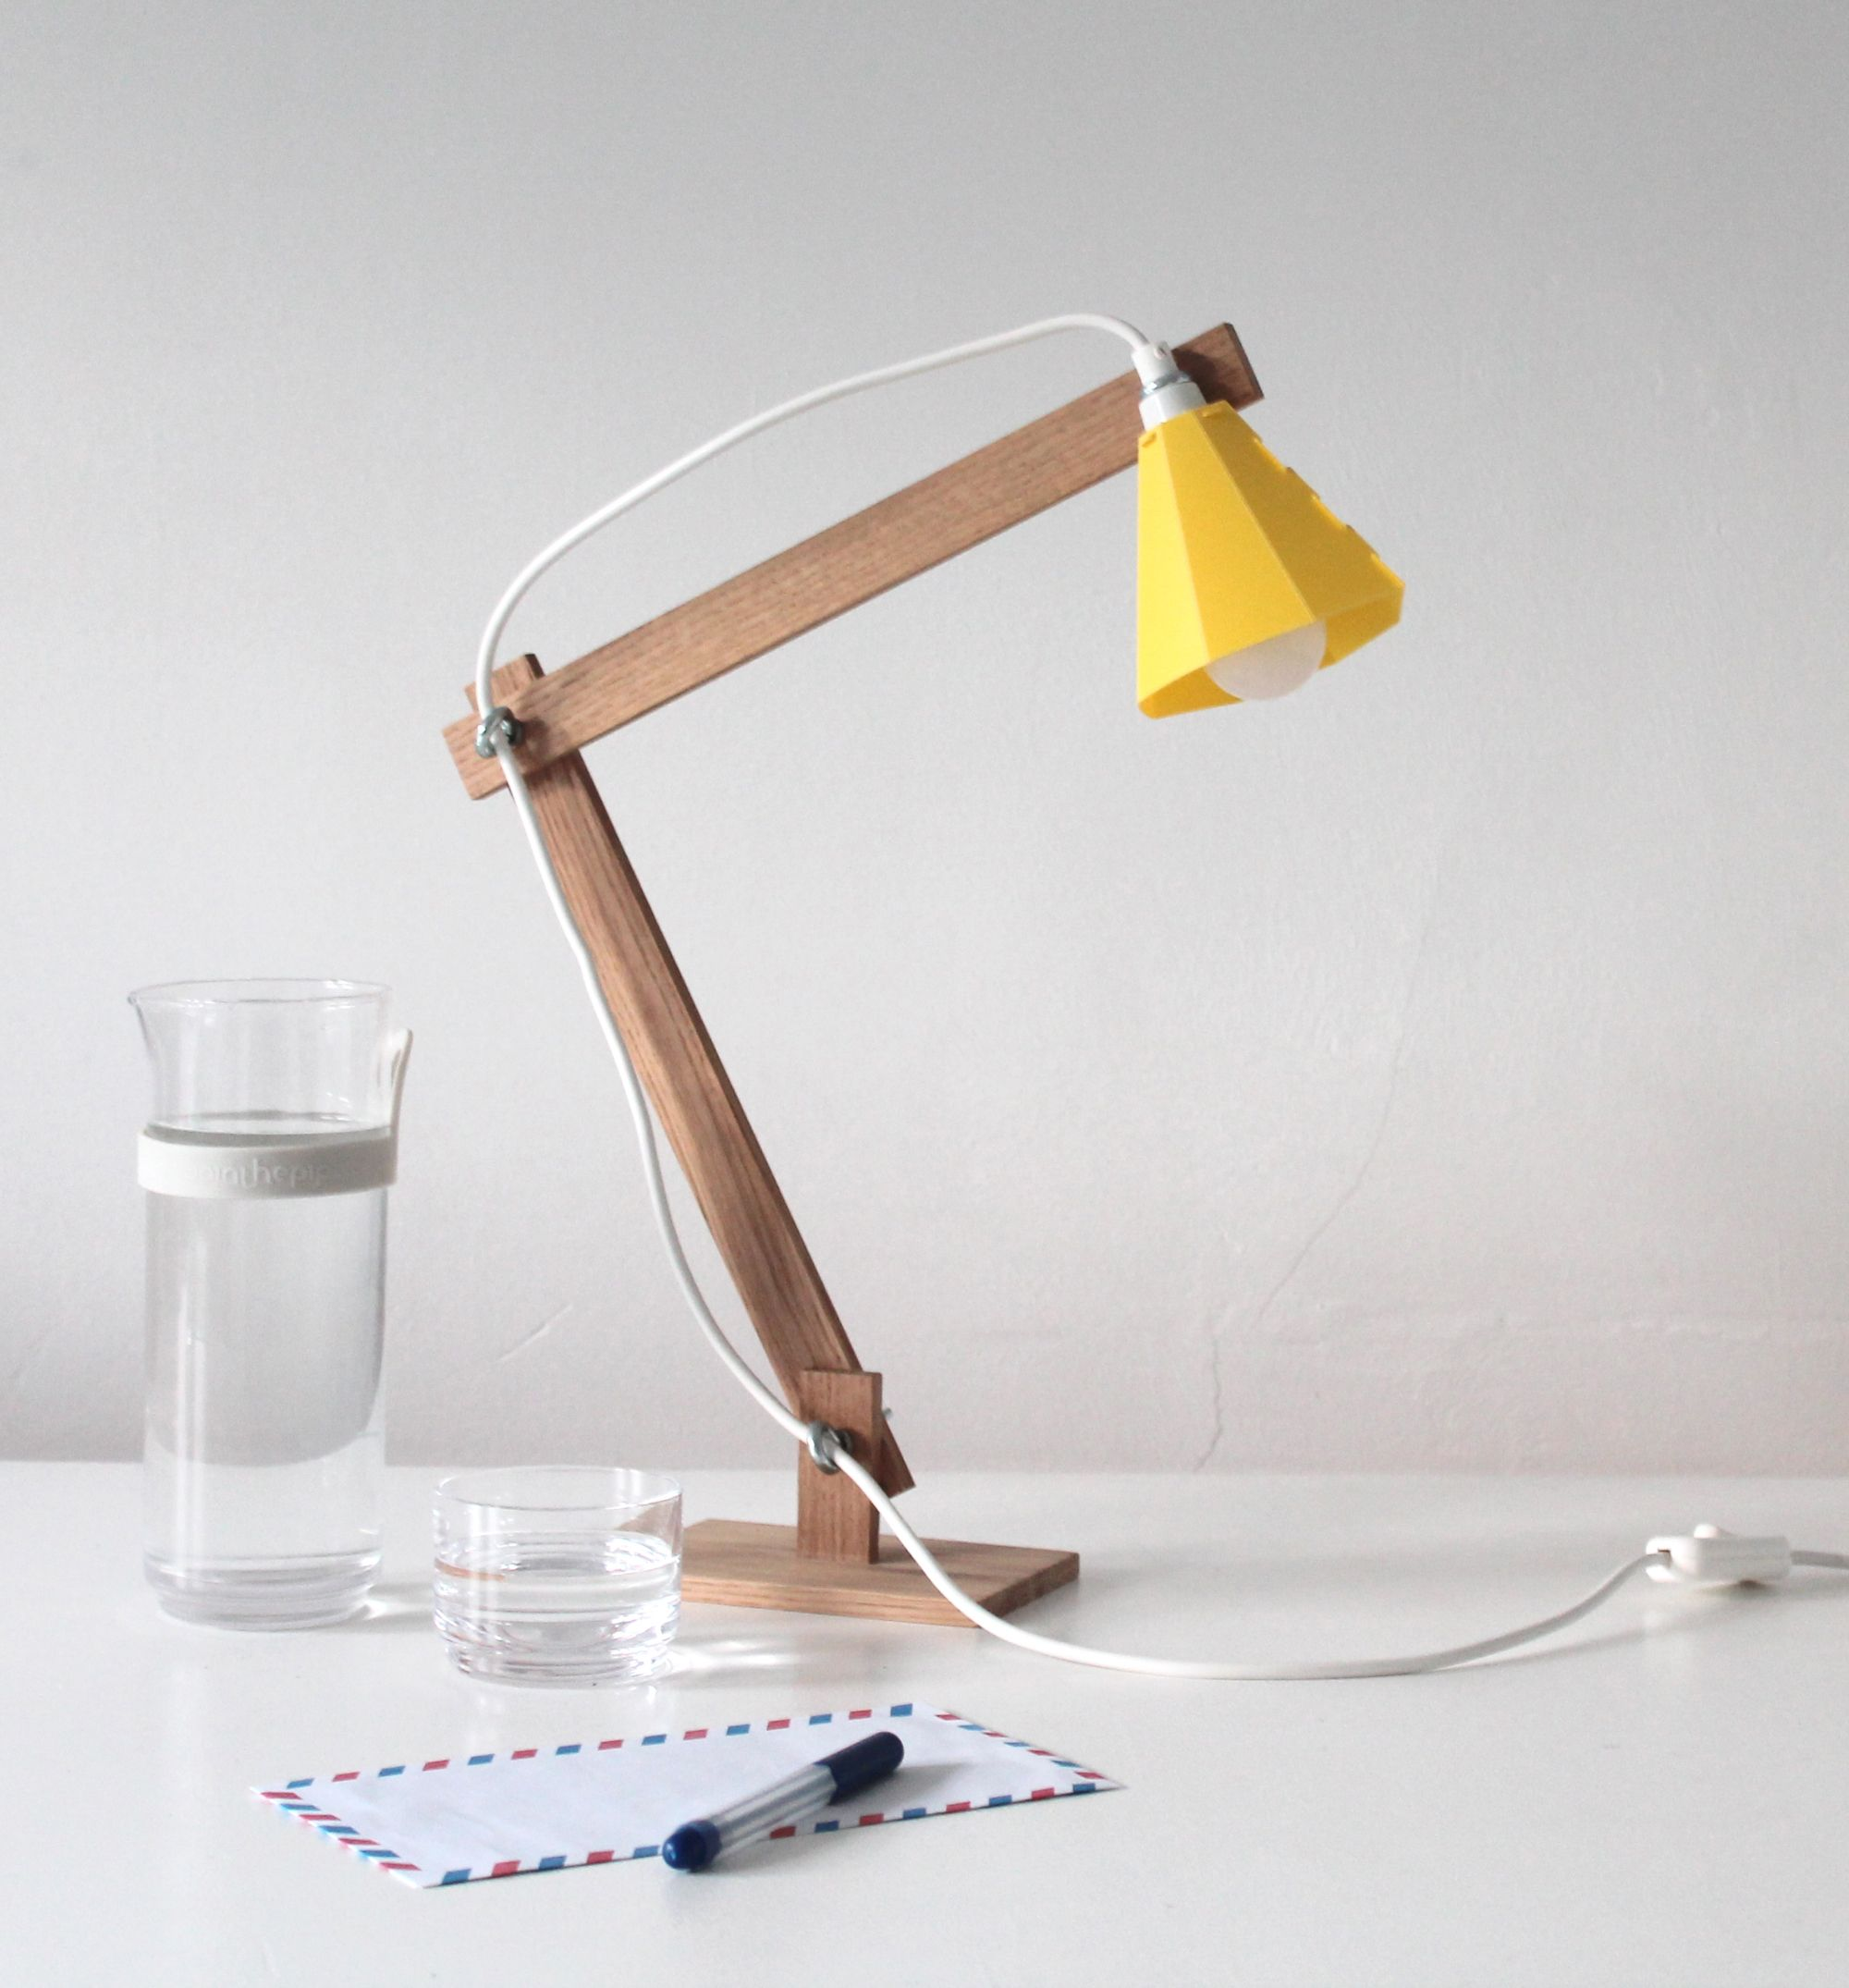 Studio met designs and makes products that are characterized by high quality materials and sober designs with attention to detail. The joinings are often the only decorative items of the products. The design of the Johan lamp is based on an archetypical desk lamp. The brightly colored lampshades are a pleasant addition to the interior, [...]